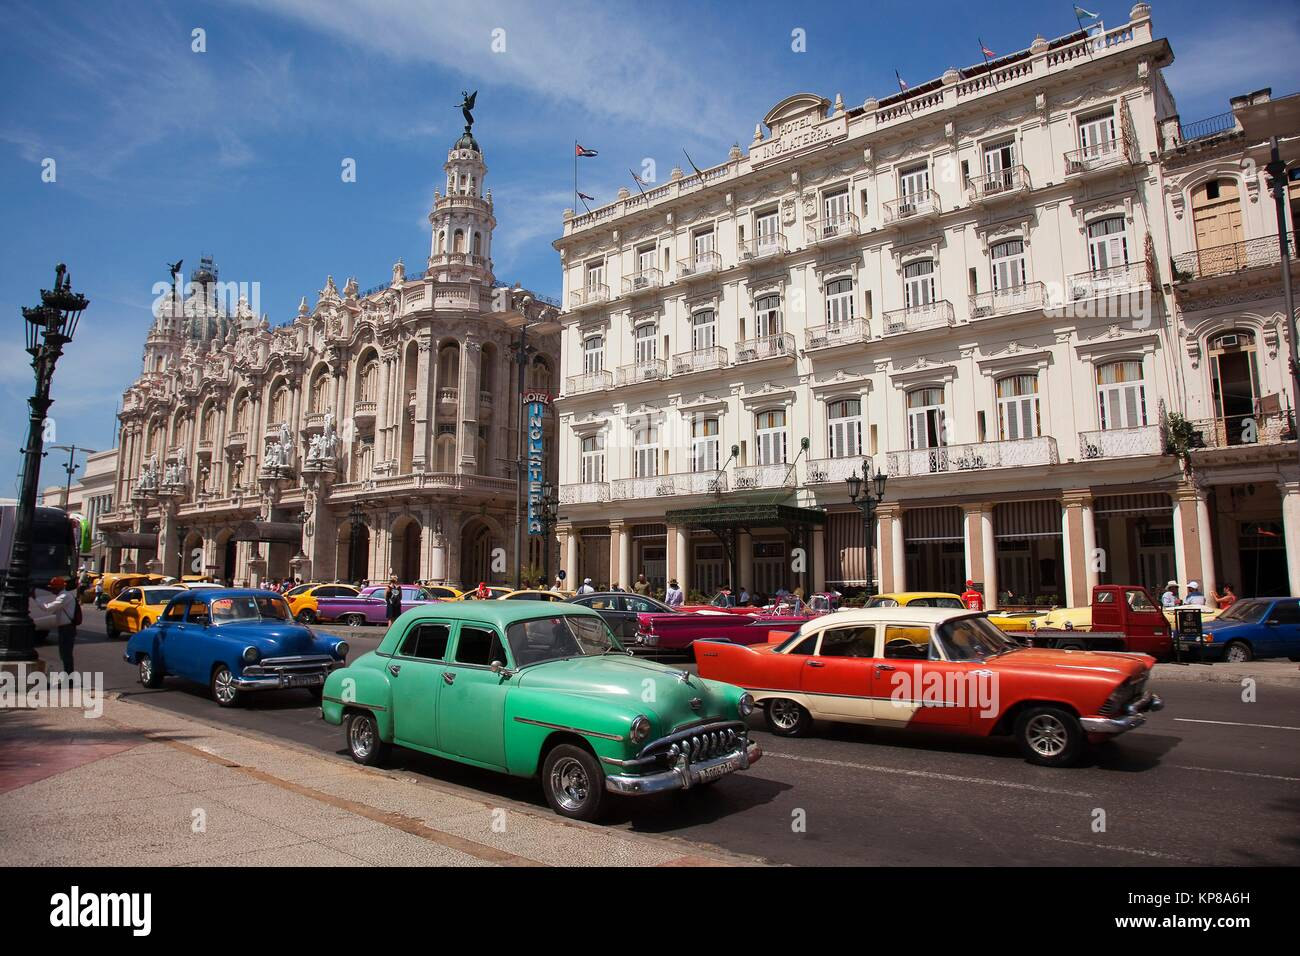 Vintage American car used as taxi in Central Havana with the Hotel Inglaterra, Gran Teatro and Capitolio building - Stock Image